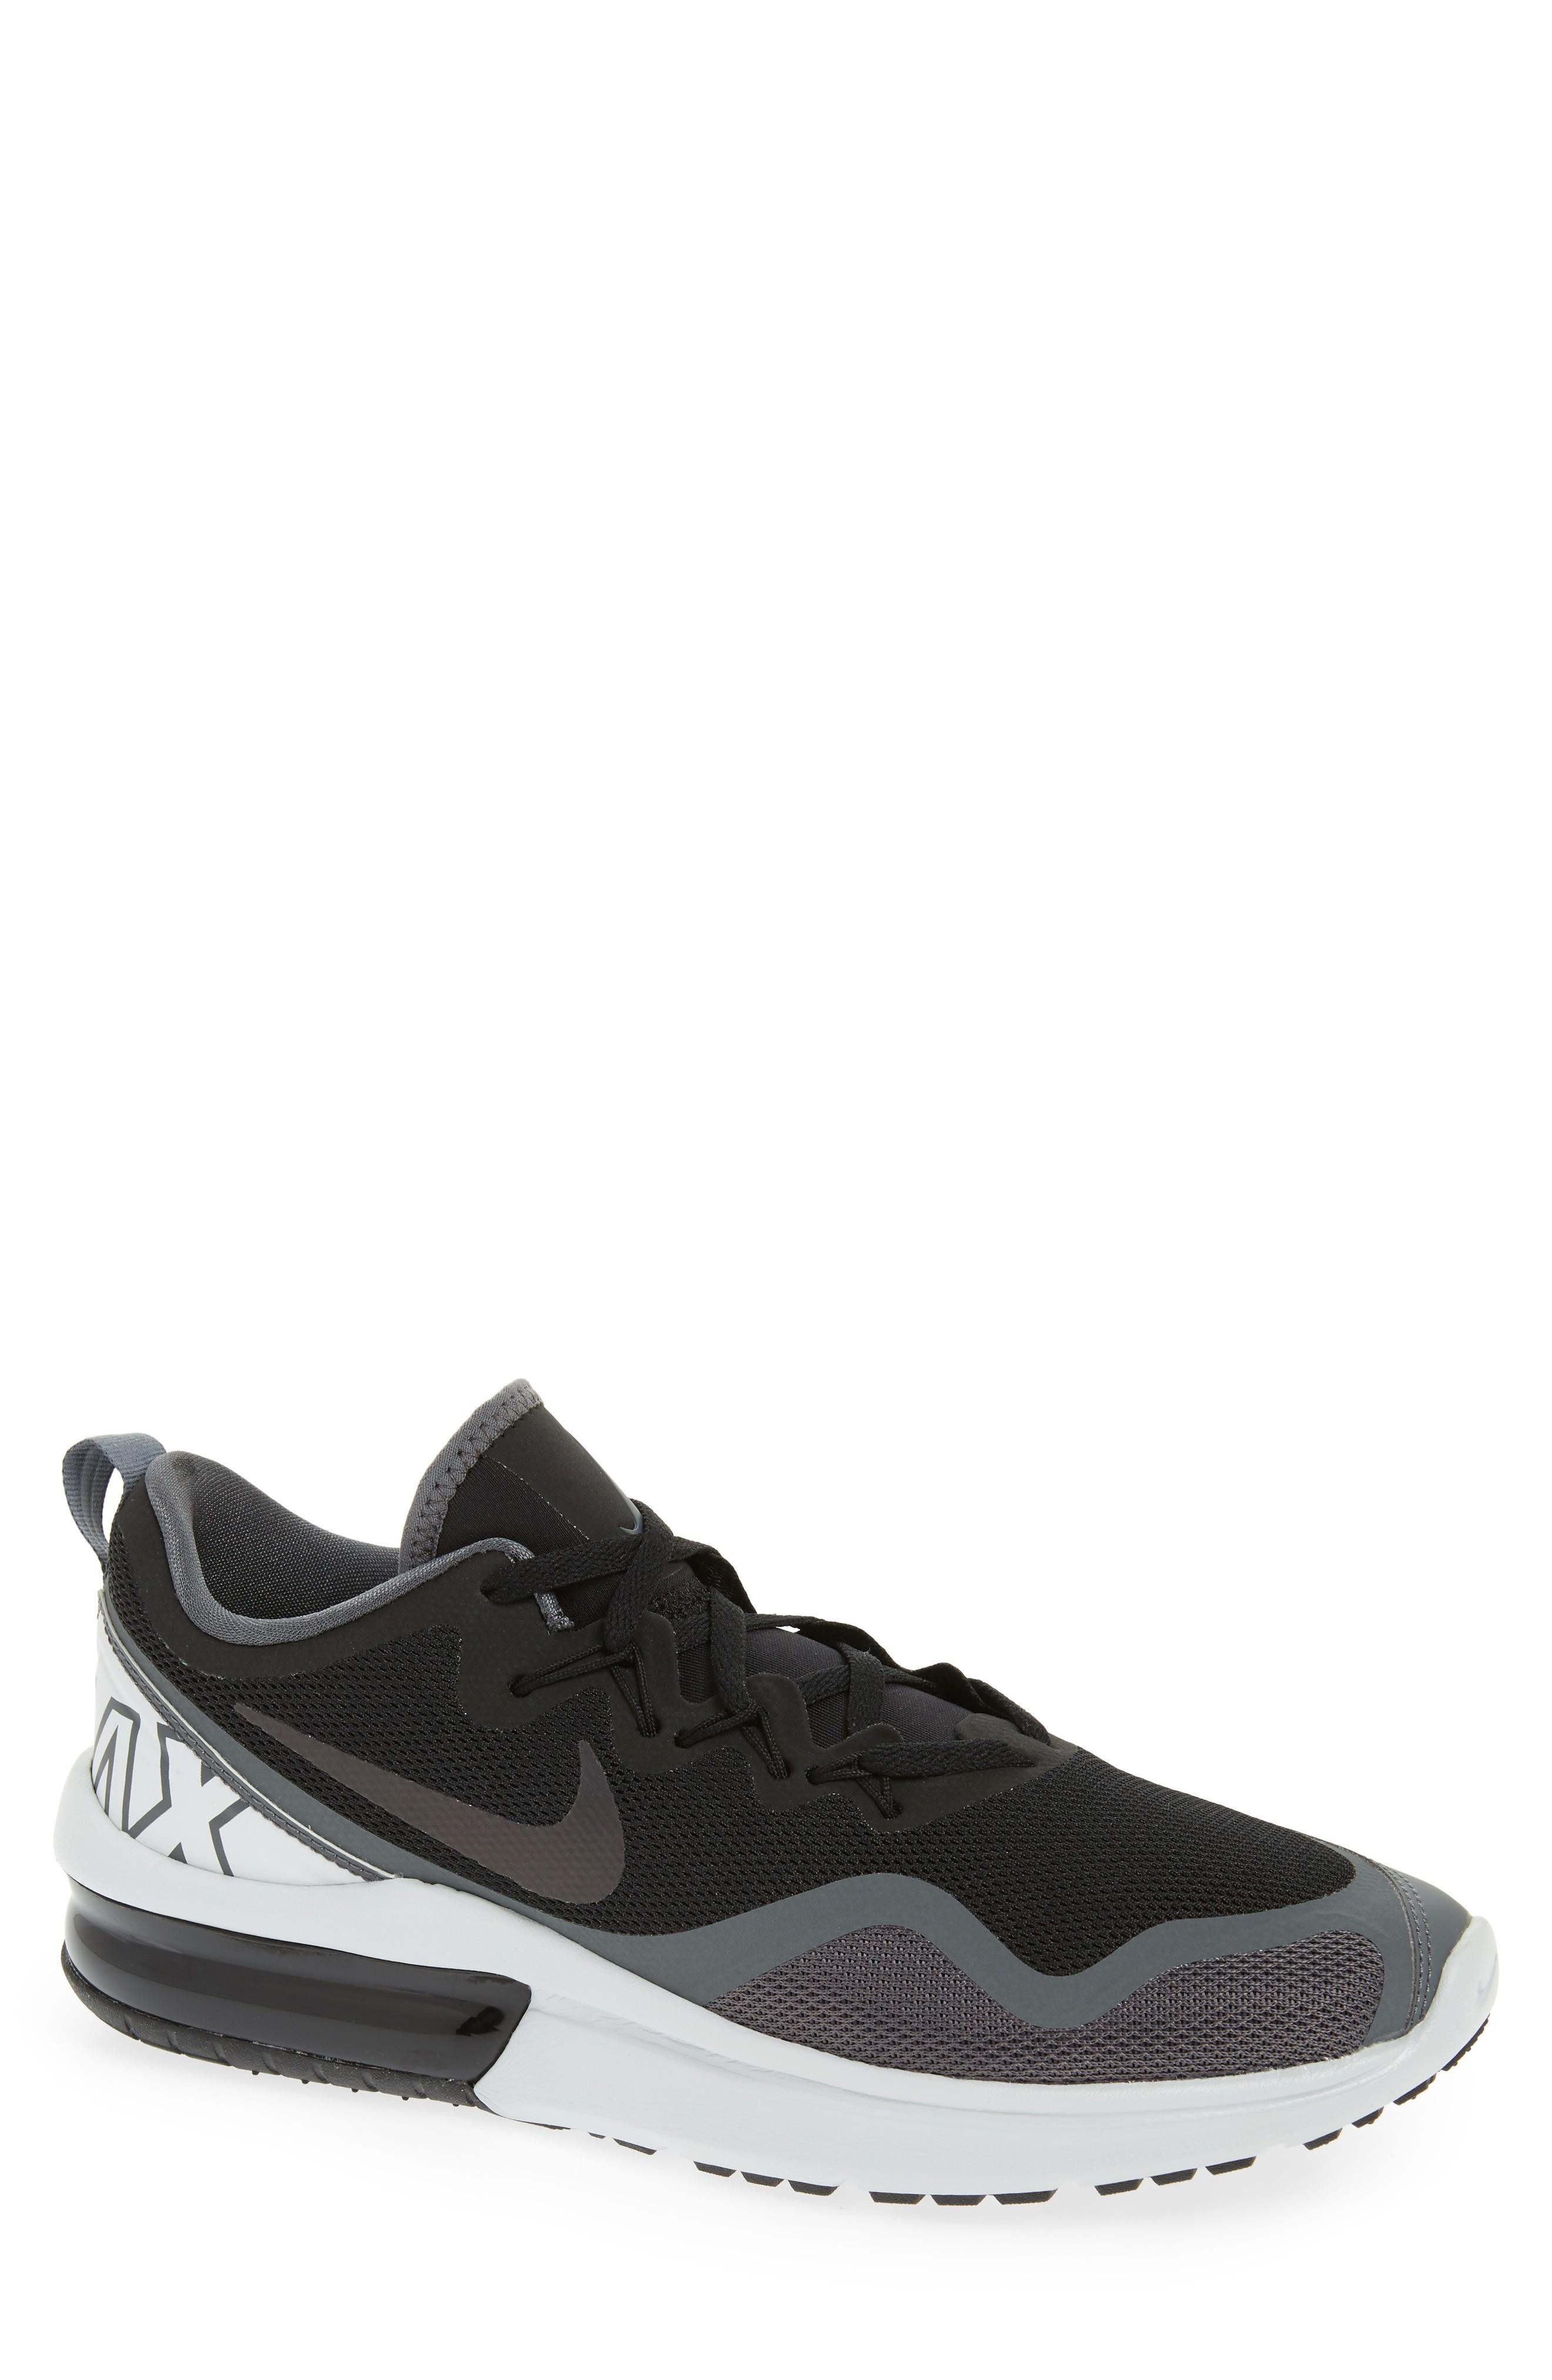 6f77764cfa4 Nike Air Max Fury Running Shoe In Black  Multi-Color-Dark Grey ...